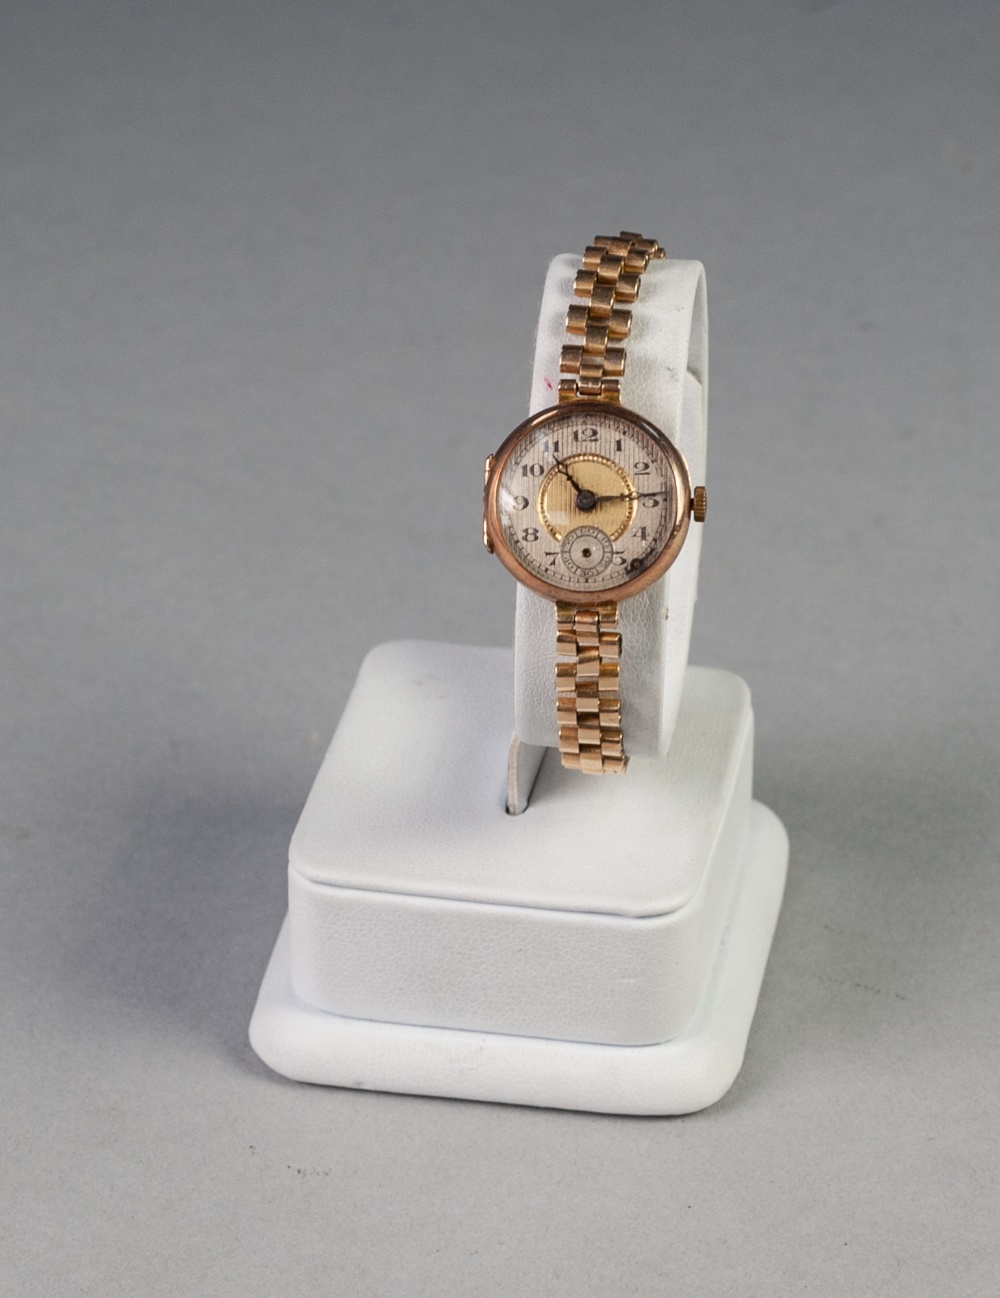 Lot 15 - a 9ct GOLD LADY'S WRIST WATCH, on rolled gold linked bracelet (seconds hand detached)